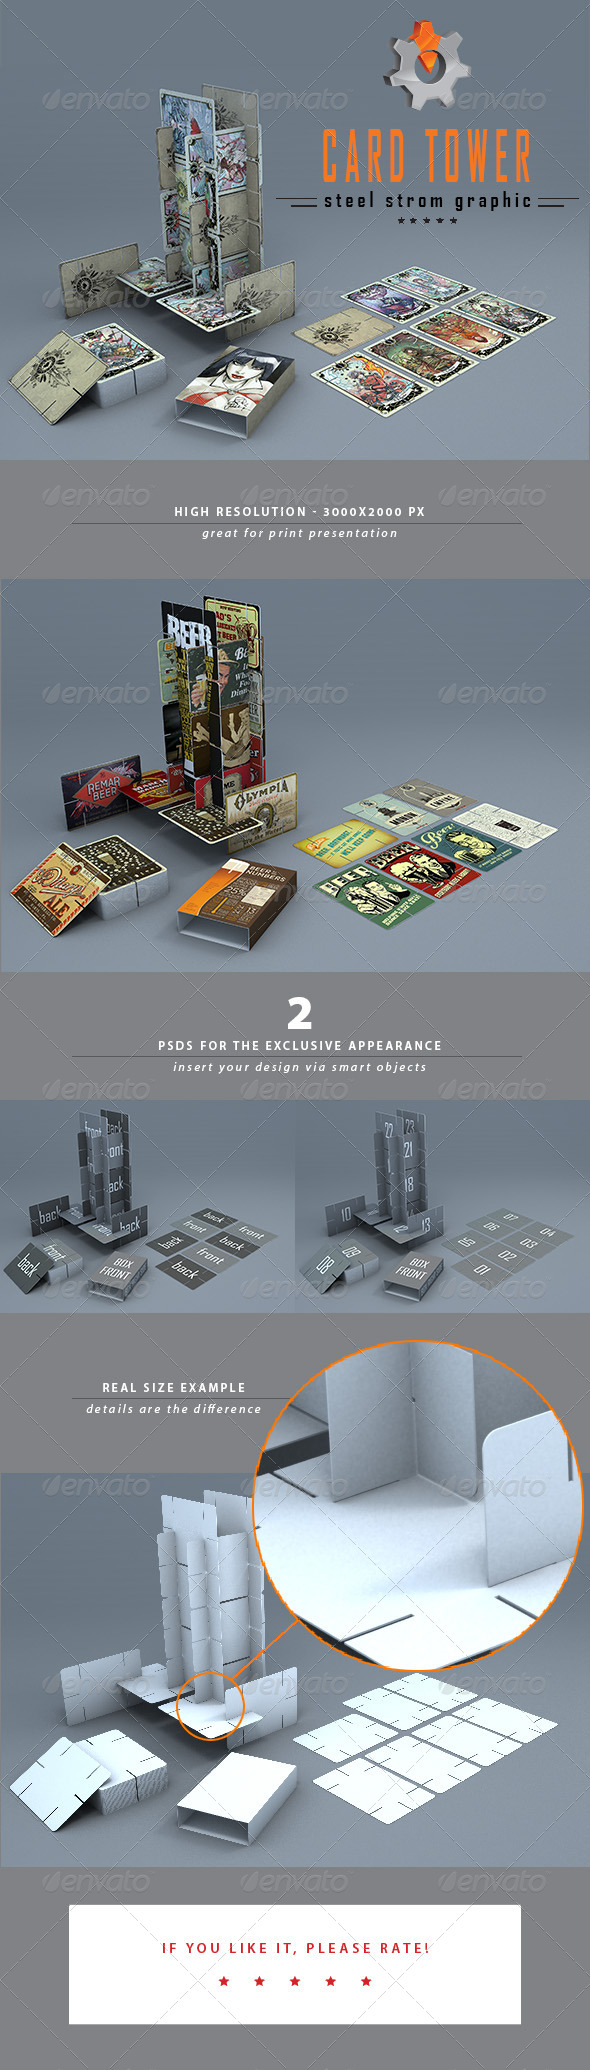 GraphicRiver 3D Card Tower Mock-up 6124742